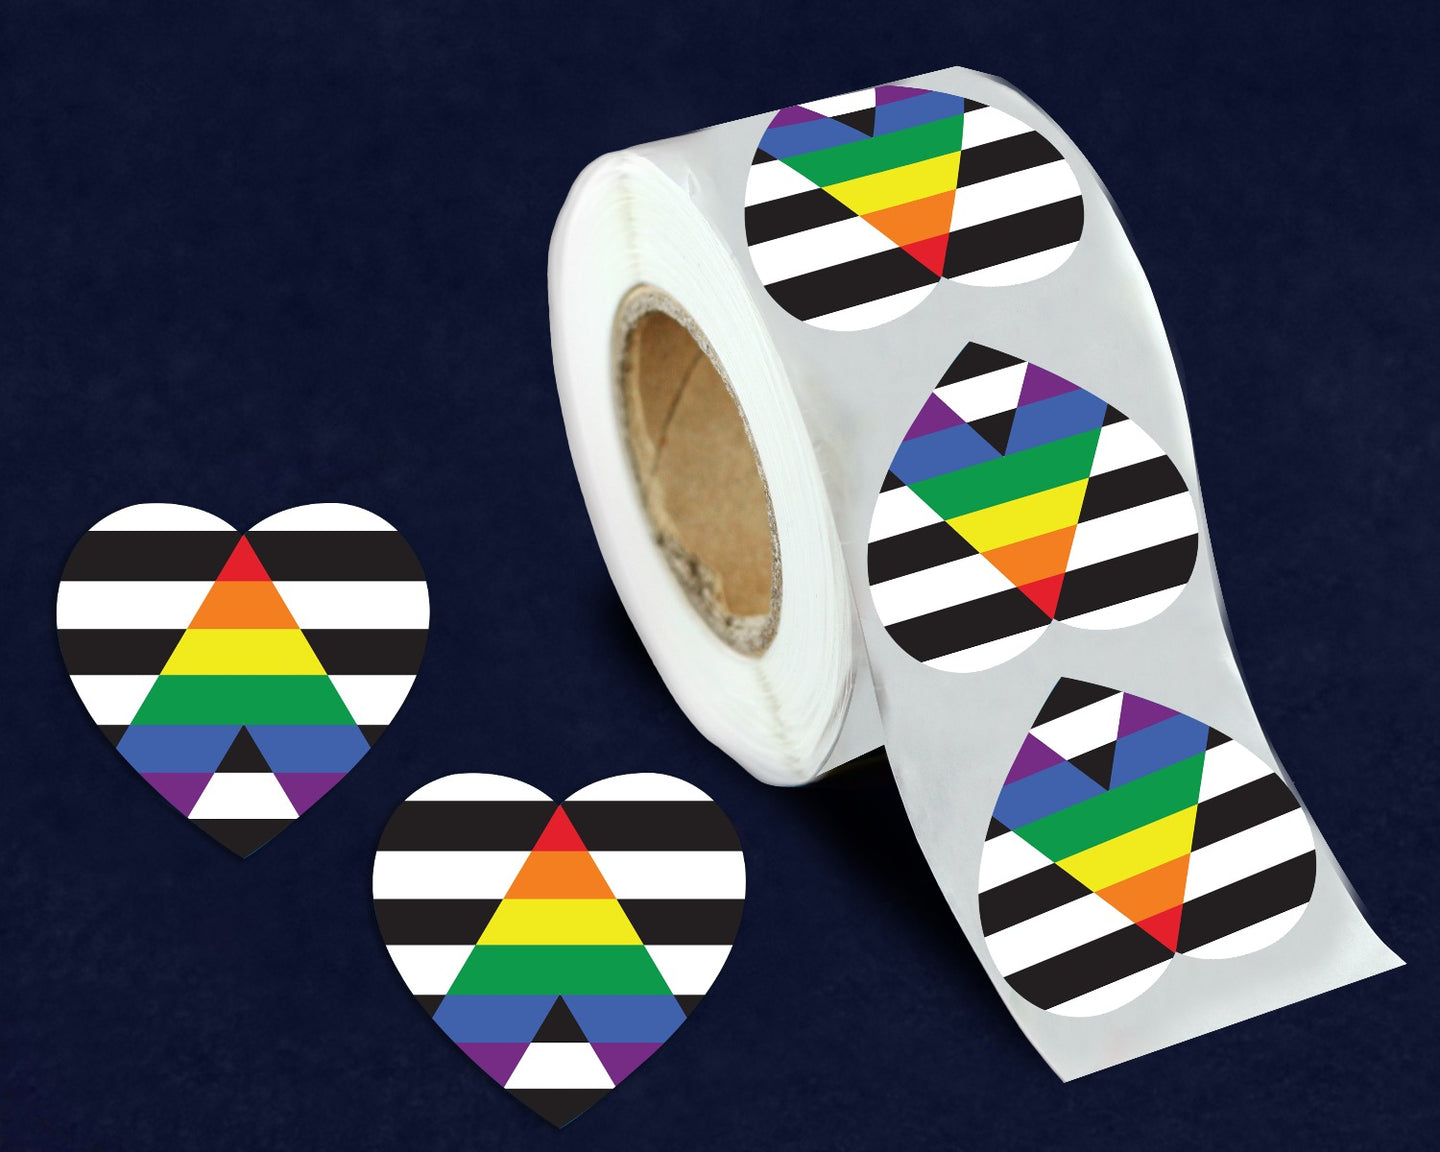 500 Straight Ally Allies LGBTQ Gay Pride Heart Stickers (500 Stickers)